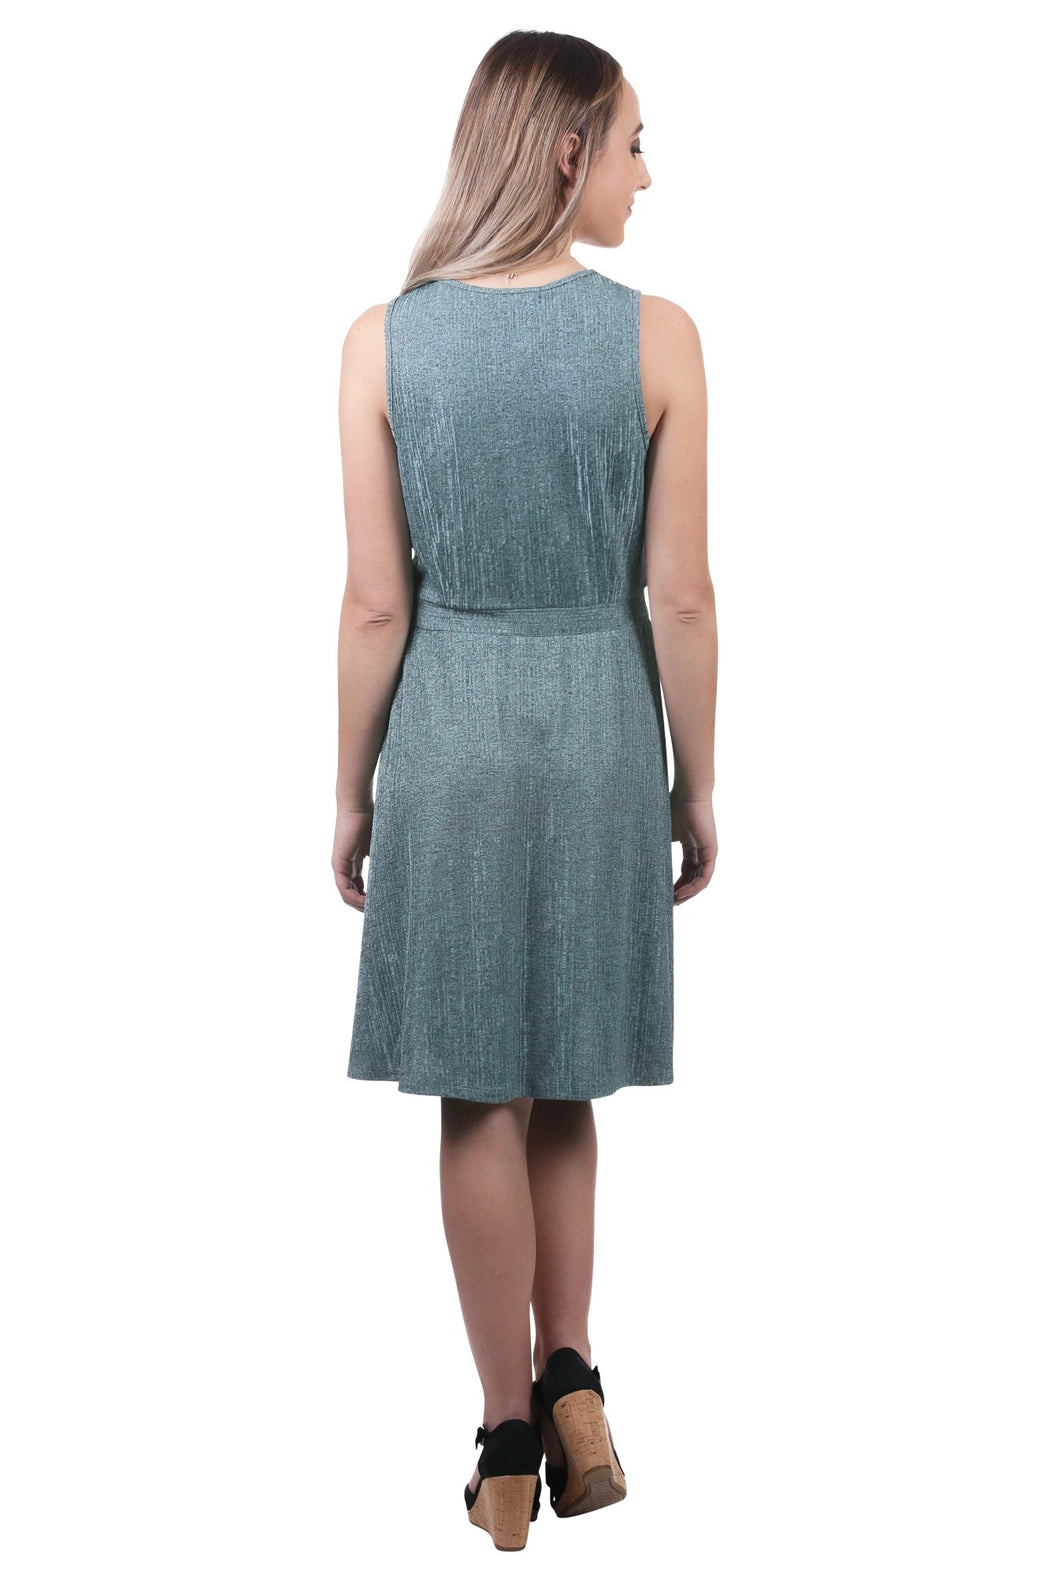 When you're looking for a dress that can take you from a day in the office to a night out on the town, our Metallic V-Neck Dress with Waistband has you covered. The V-neck combined with the defined waistband gives this dress a sophisticated look, while the fit and flare shape offers a playful twist. Super versatile and easygoing, this softly textured dress is designed to flatter.